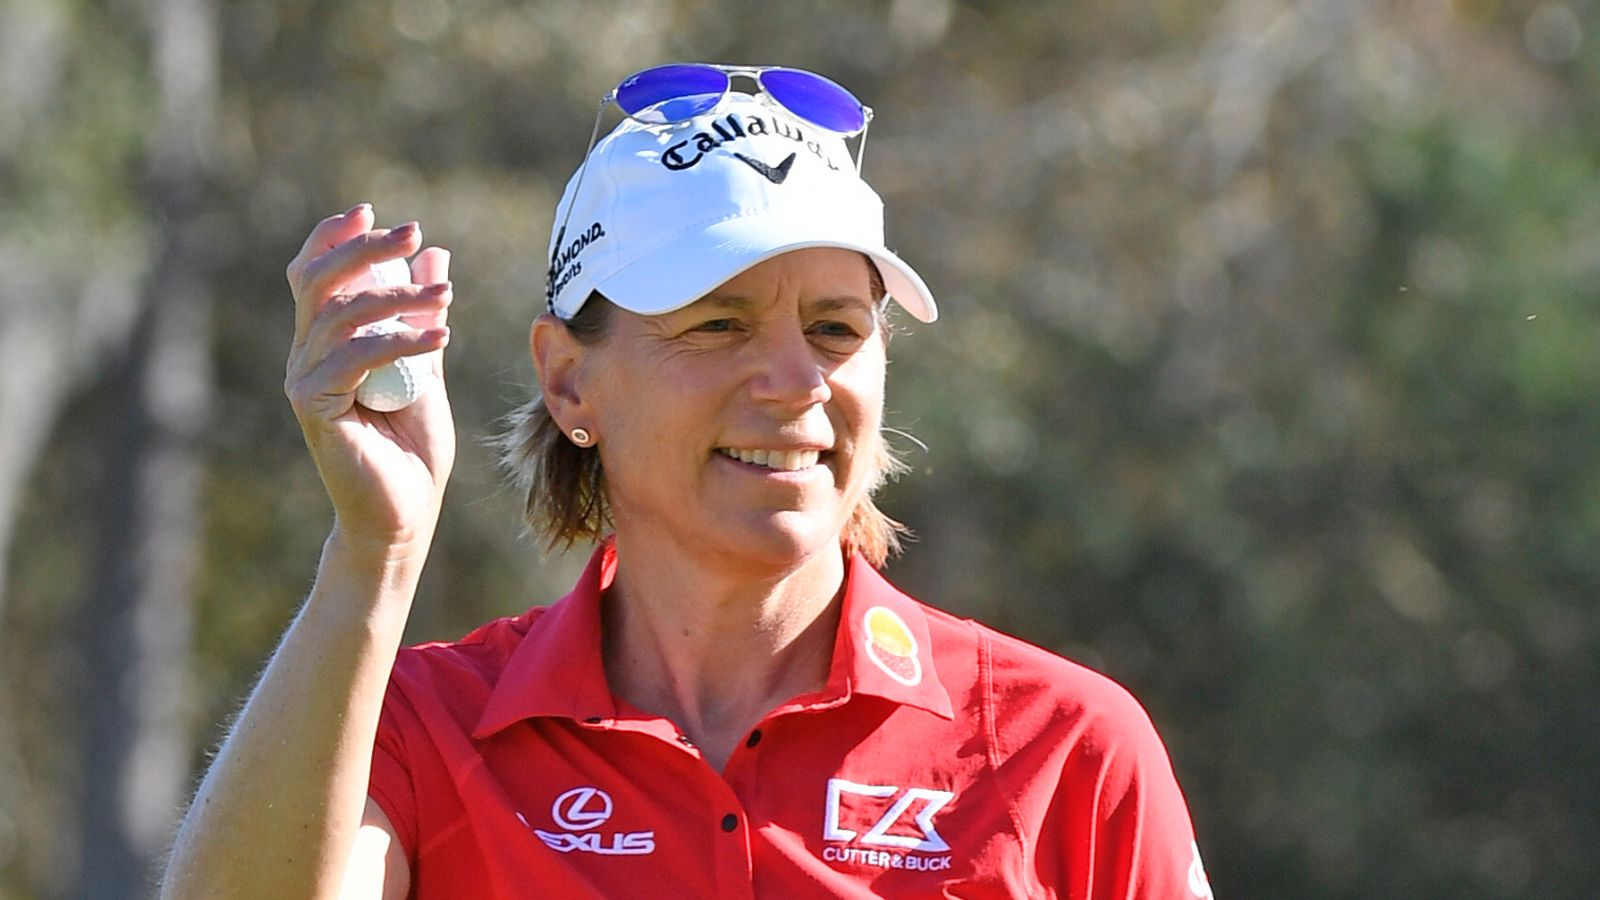 Annika Sorenstam to play in Sweden in new mixed event co-hosted by Henrik Stenson